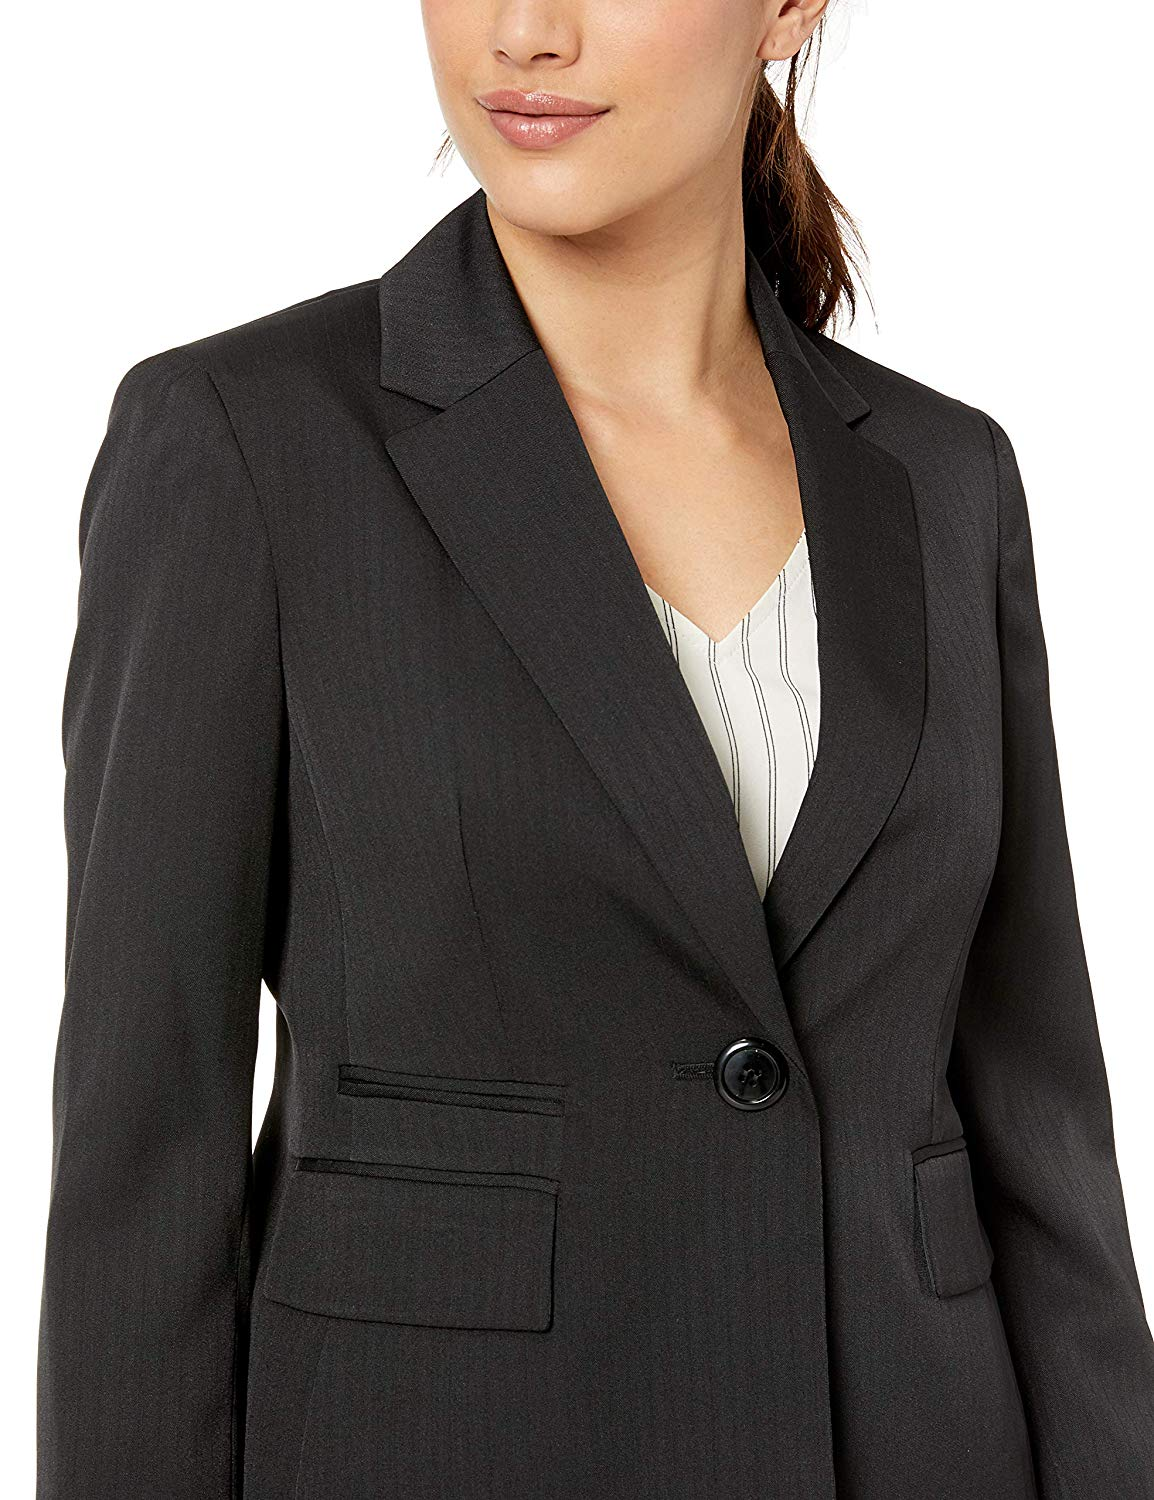 Le Suit Plus Size Suit, Belted Notched Collar Jacket & Wide